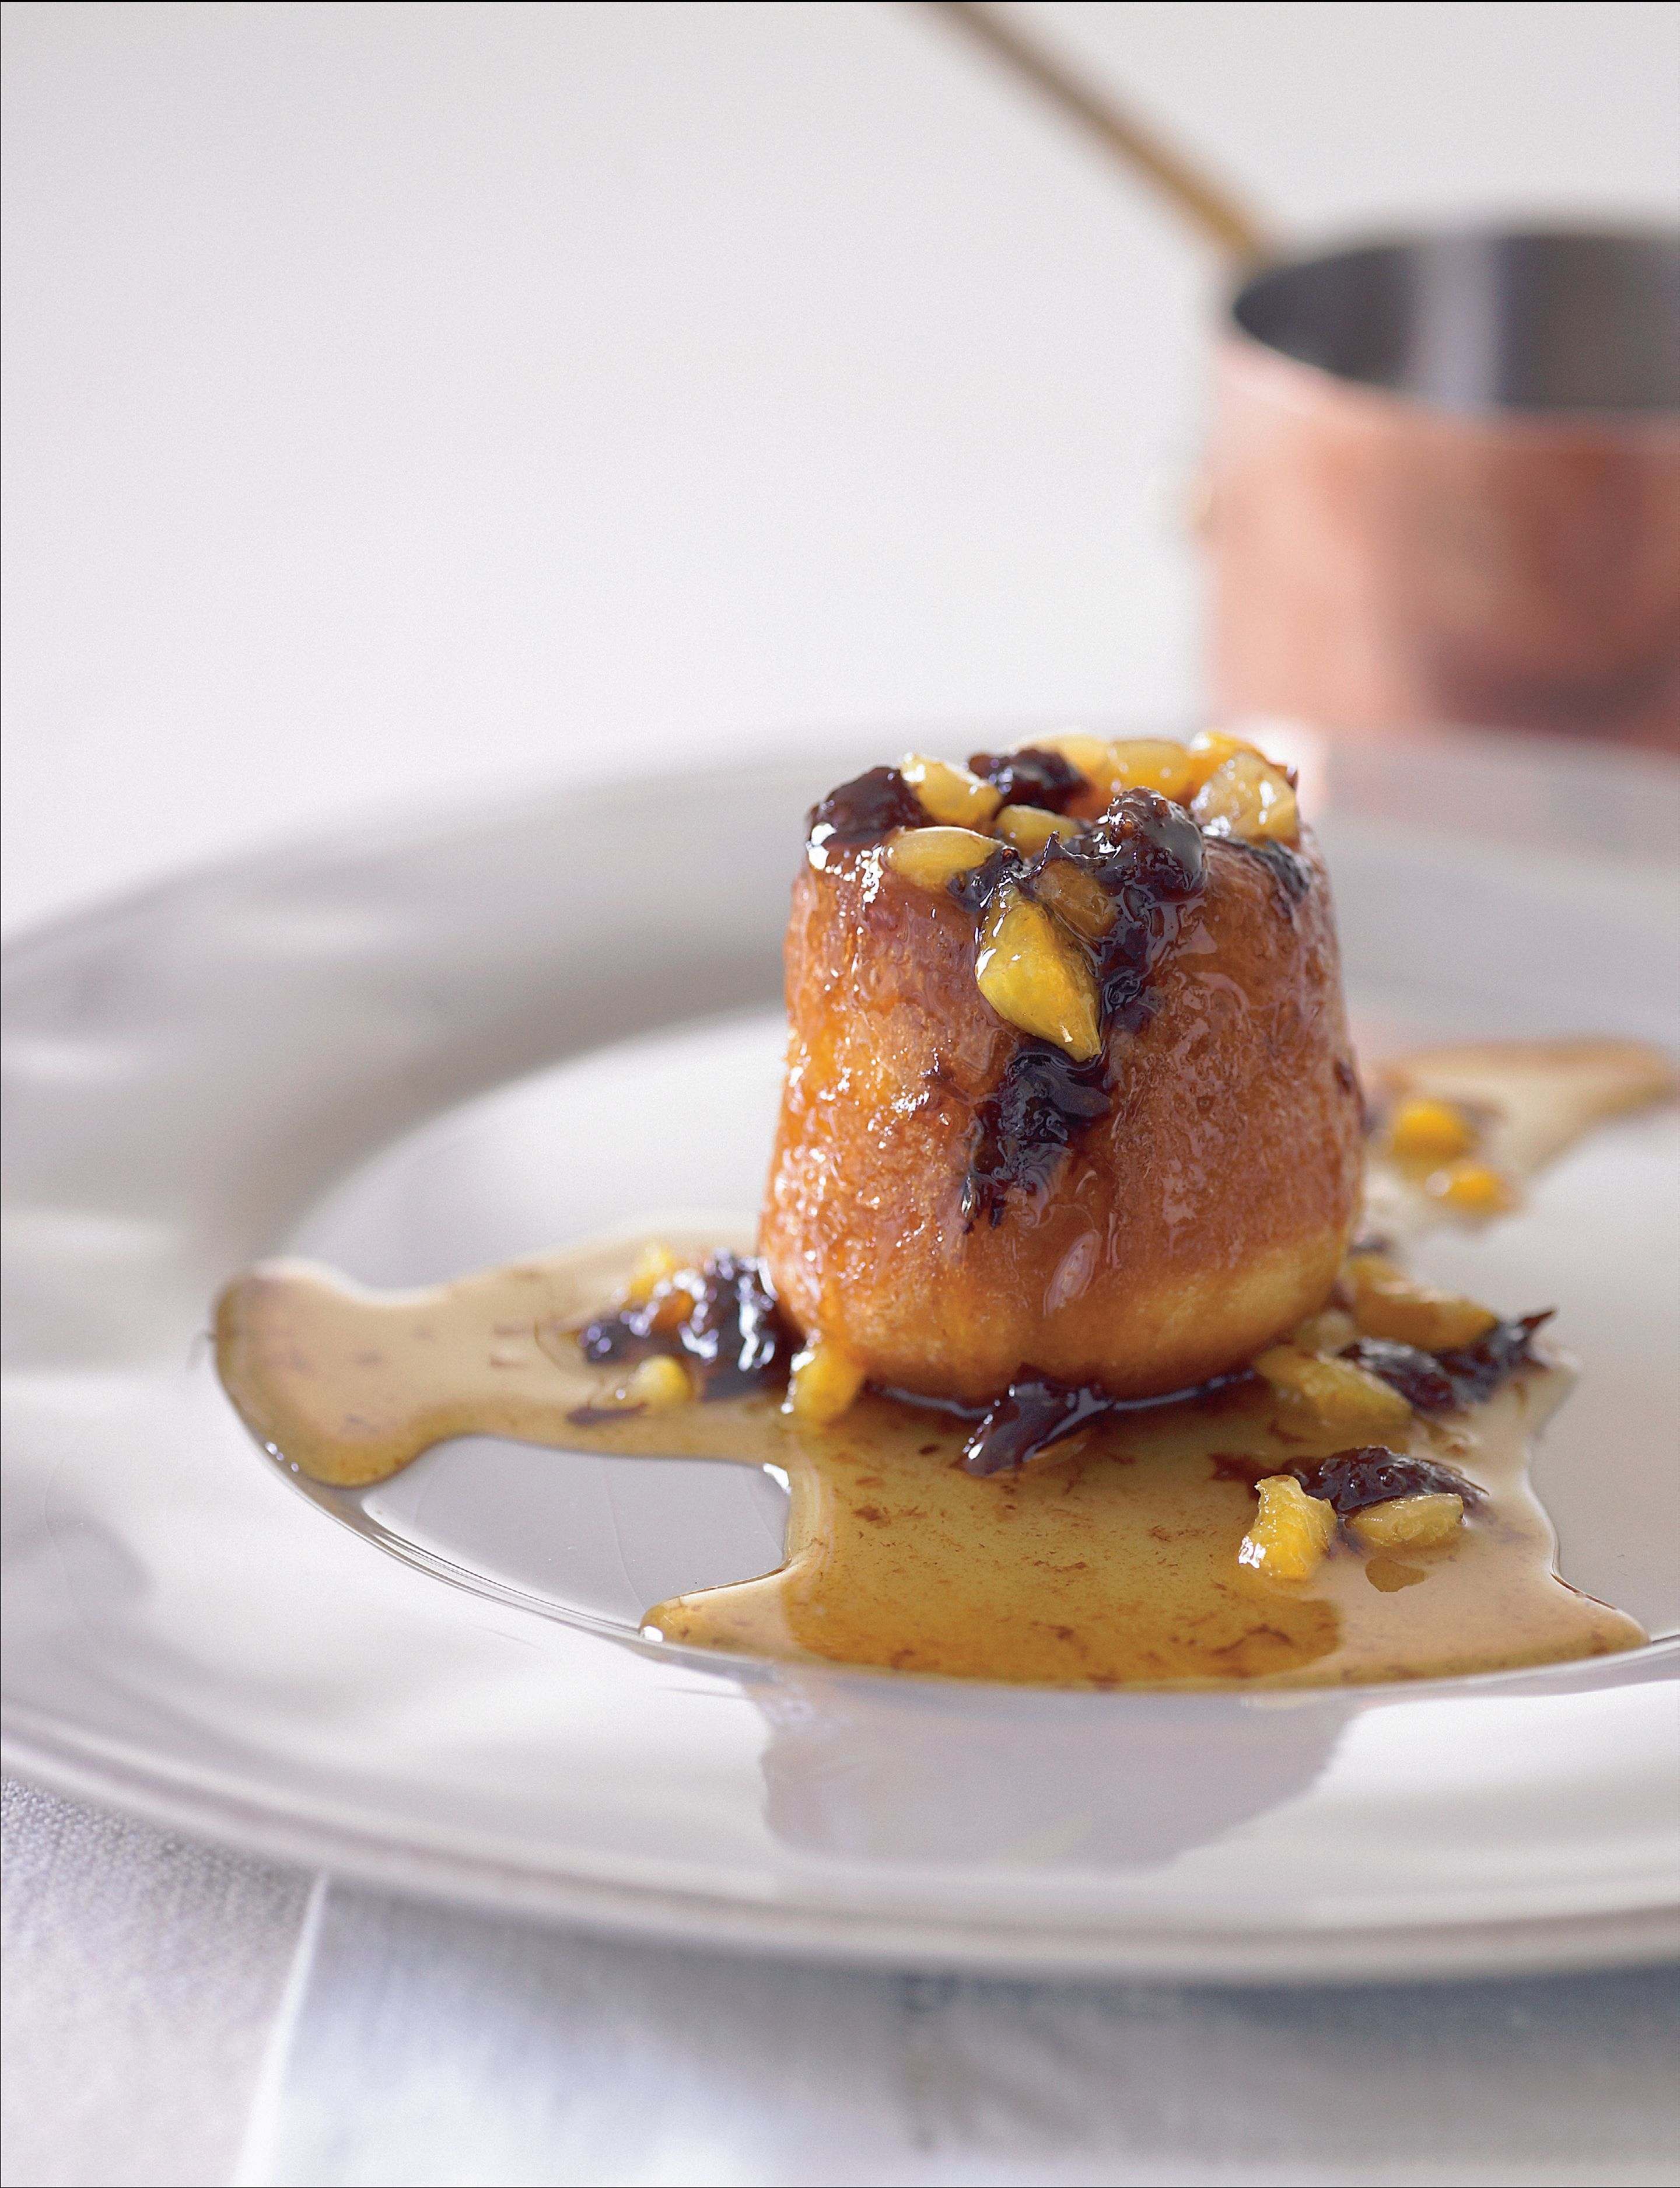 Brioche pudding with candied fruits